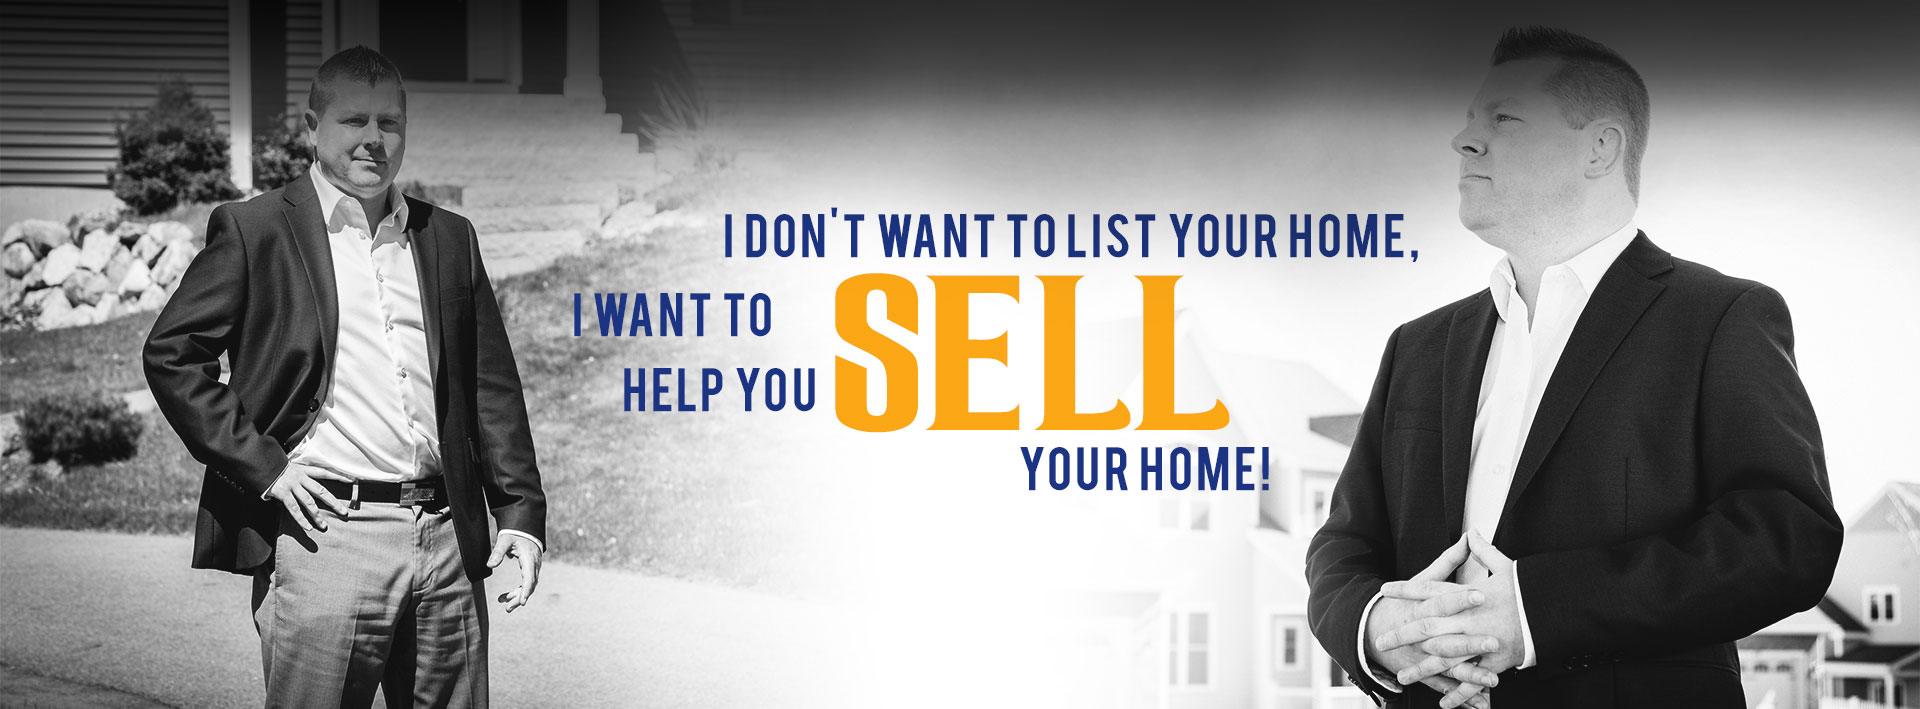 I Want to Help YOU Sell Your Home!